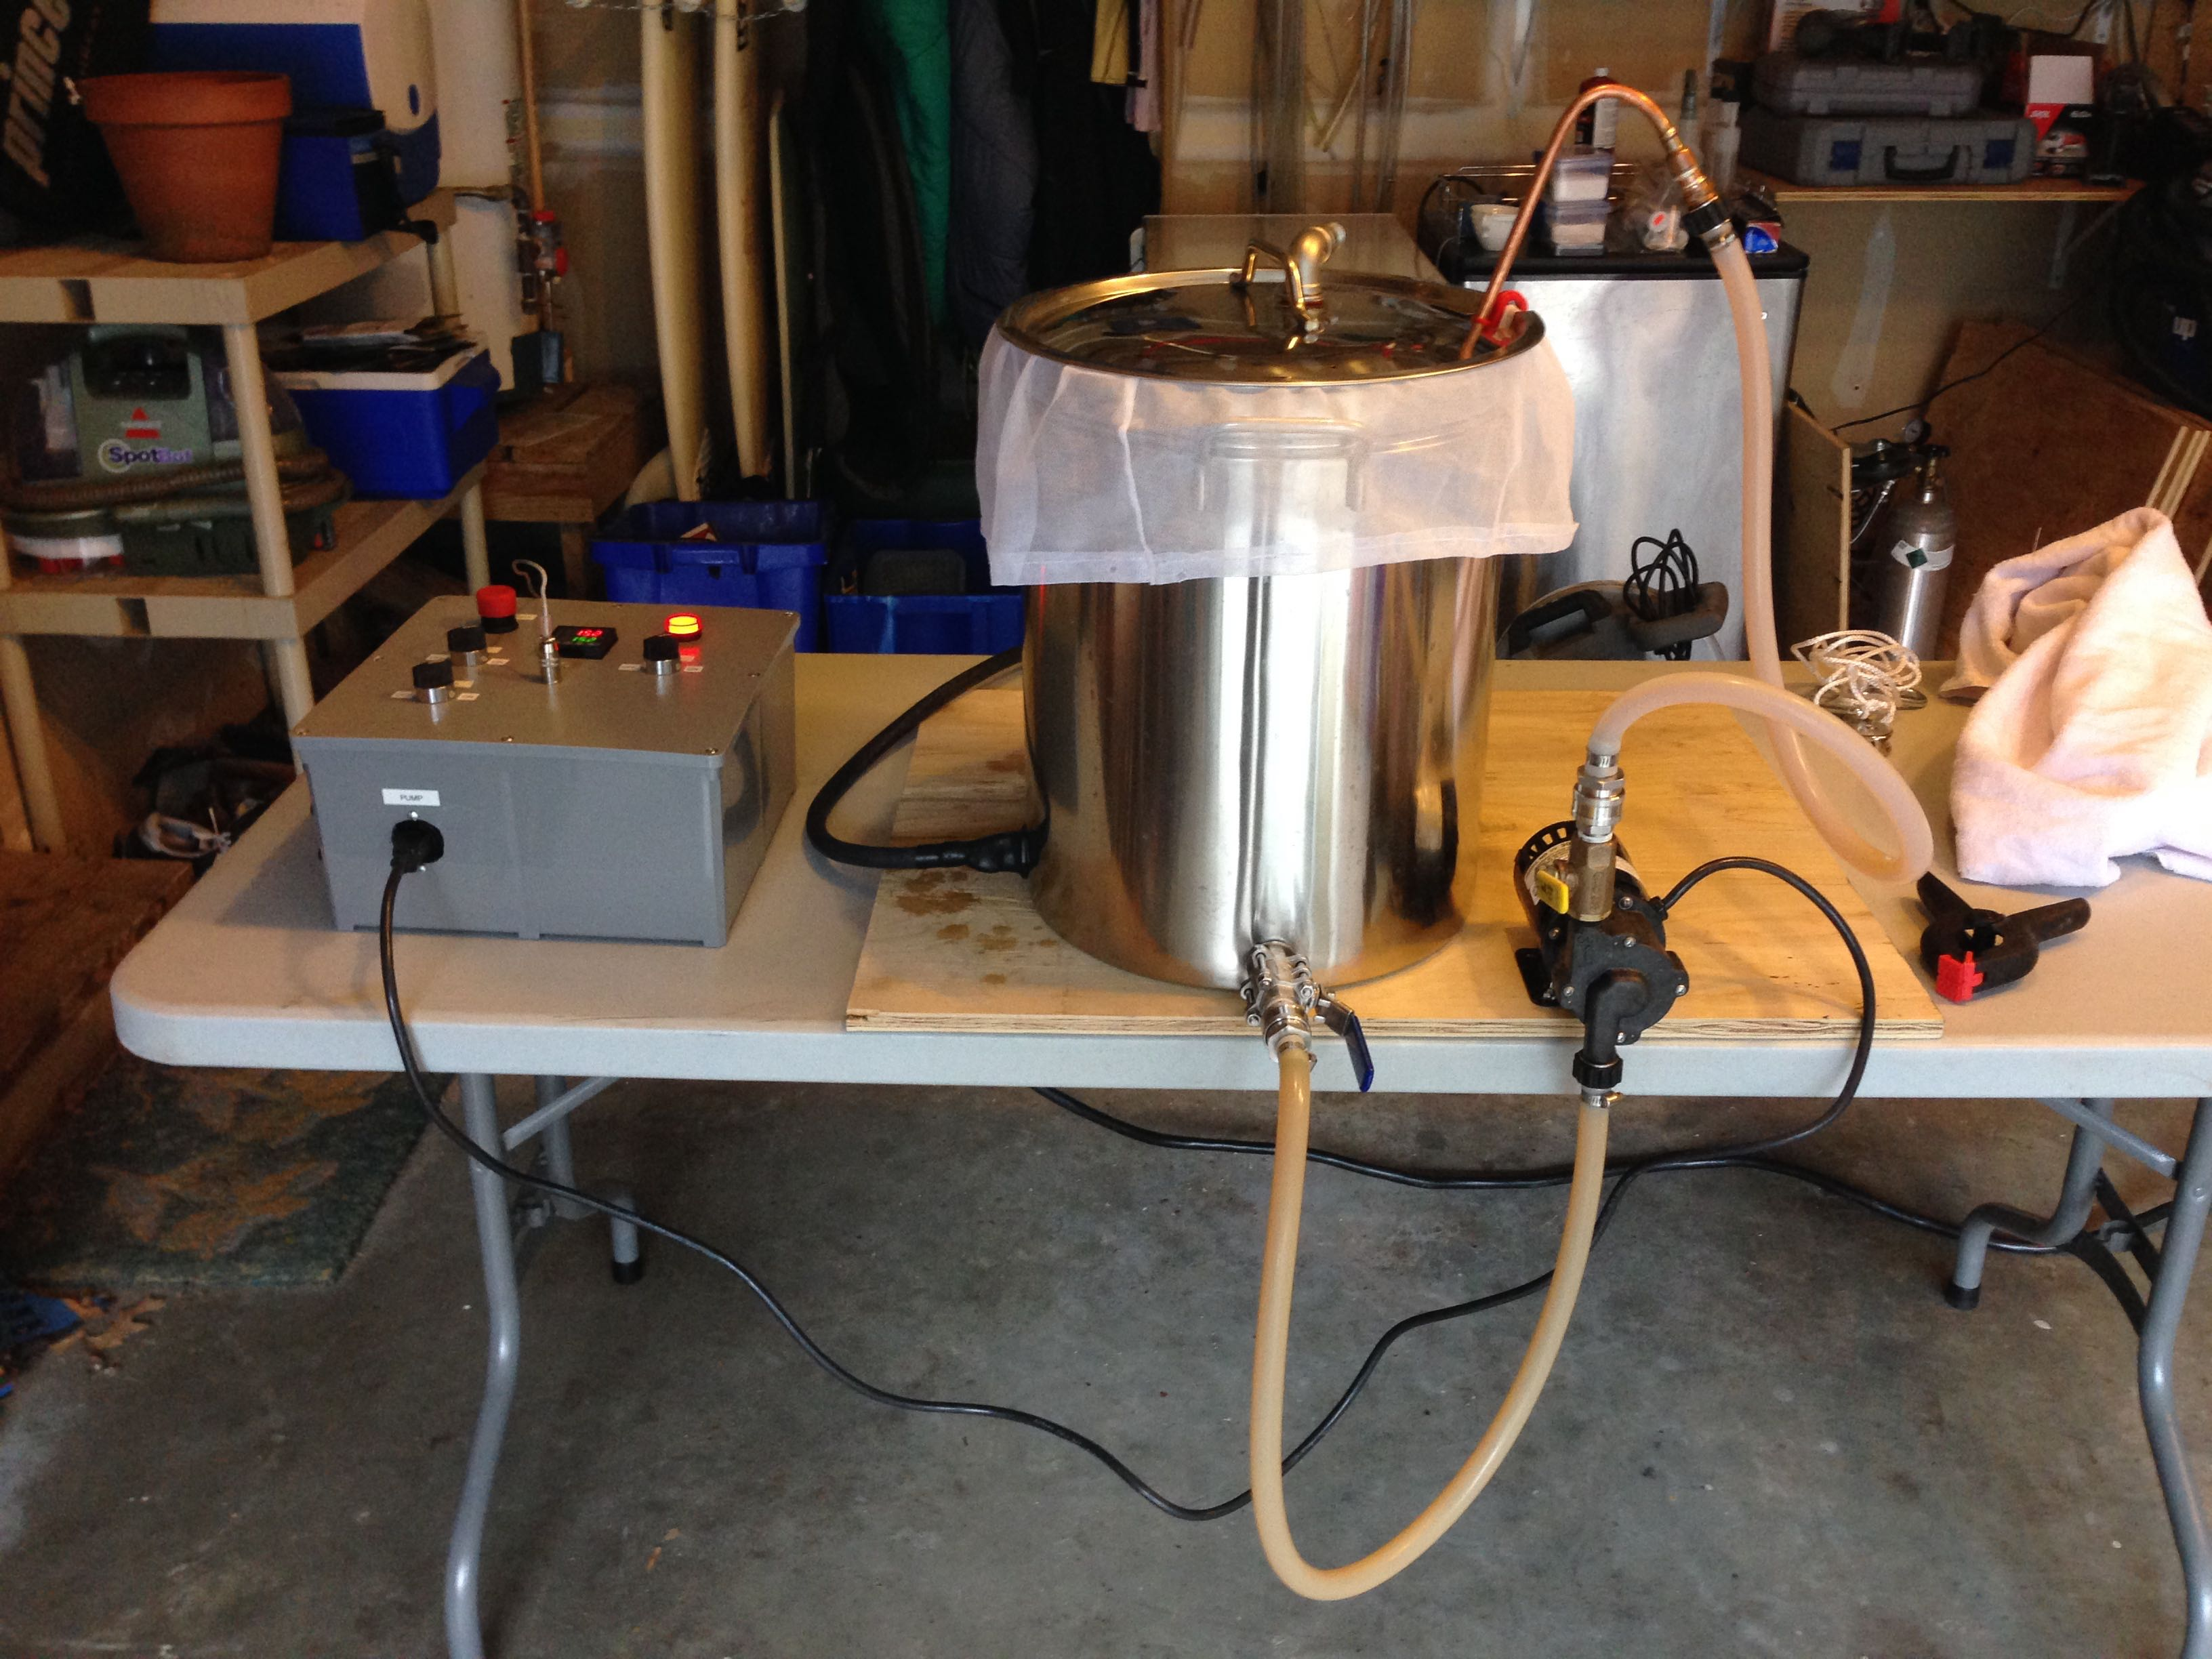 March 2015 Hommel Homebrew Wire 240v Electric Brew Pot Controller Home Forums Im Basically Assuming A Bunch Of Stuff Will Go Wrong So Ive Decided To Small Batch With Cheap And Simple Beer That Show Flaws Maybe Style